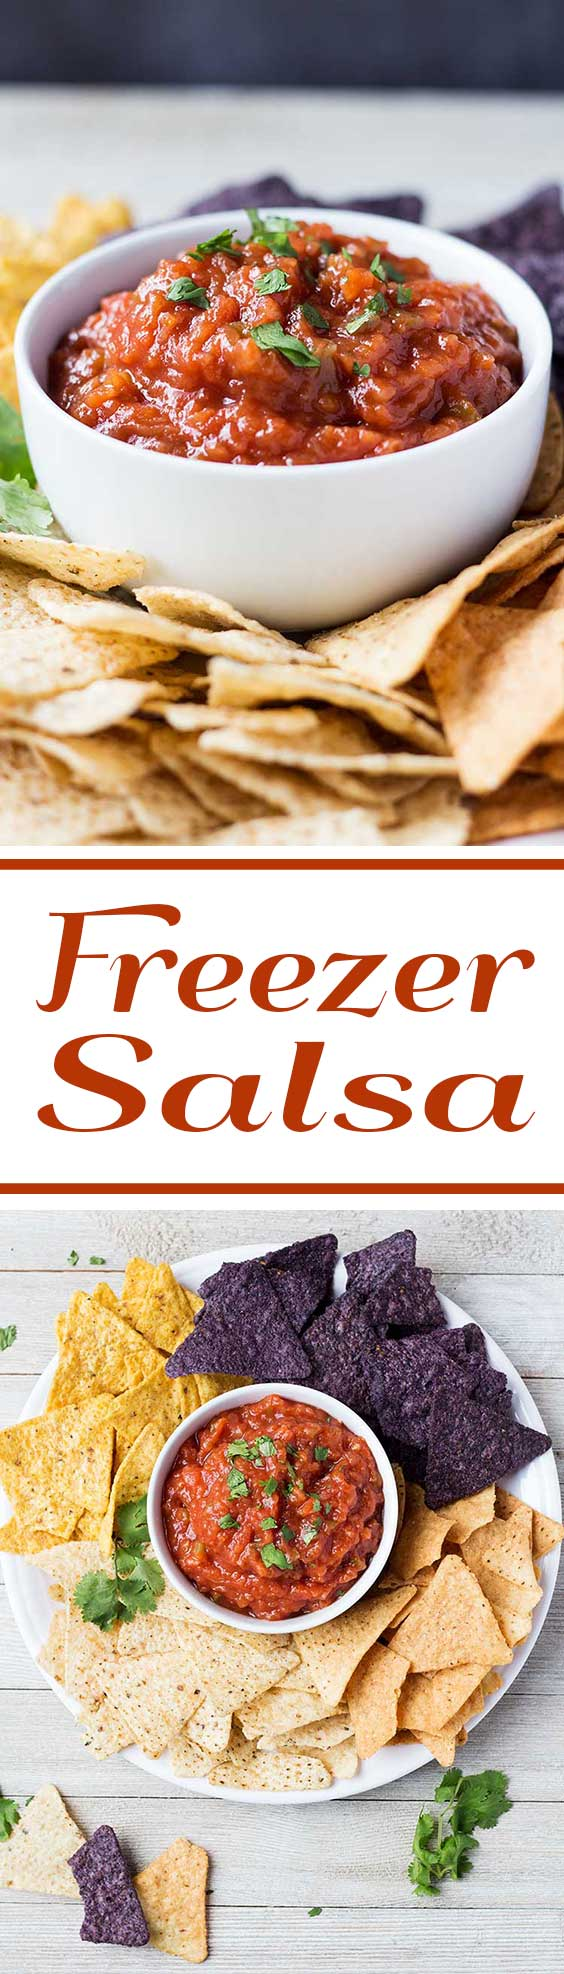 Freezer Salsa | This freezer salsa recipe is a great way to use tomatoes from your garden! Skip the extra steps for canning, and just package for the freezer - it will keep for 3-6 months or longer!!